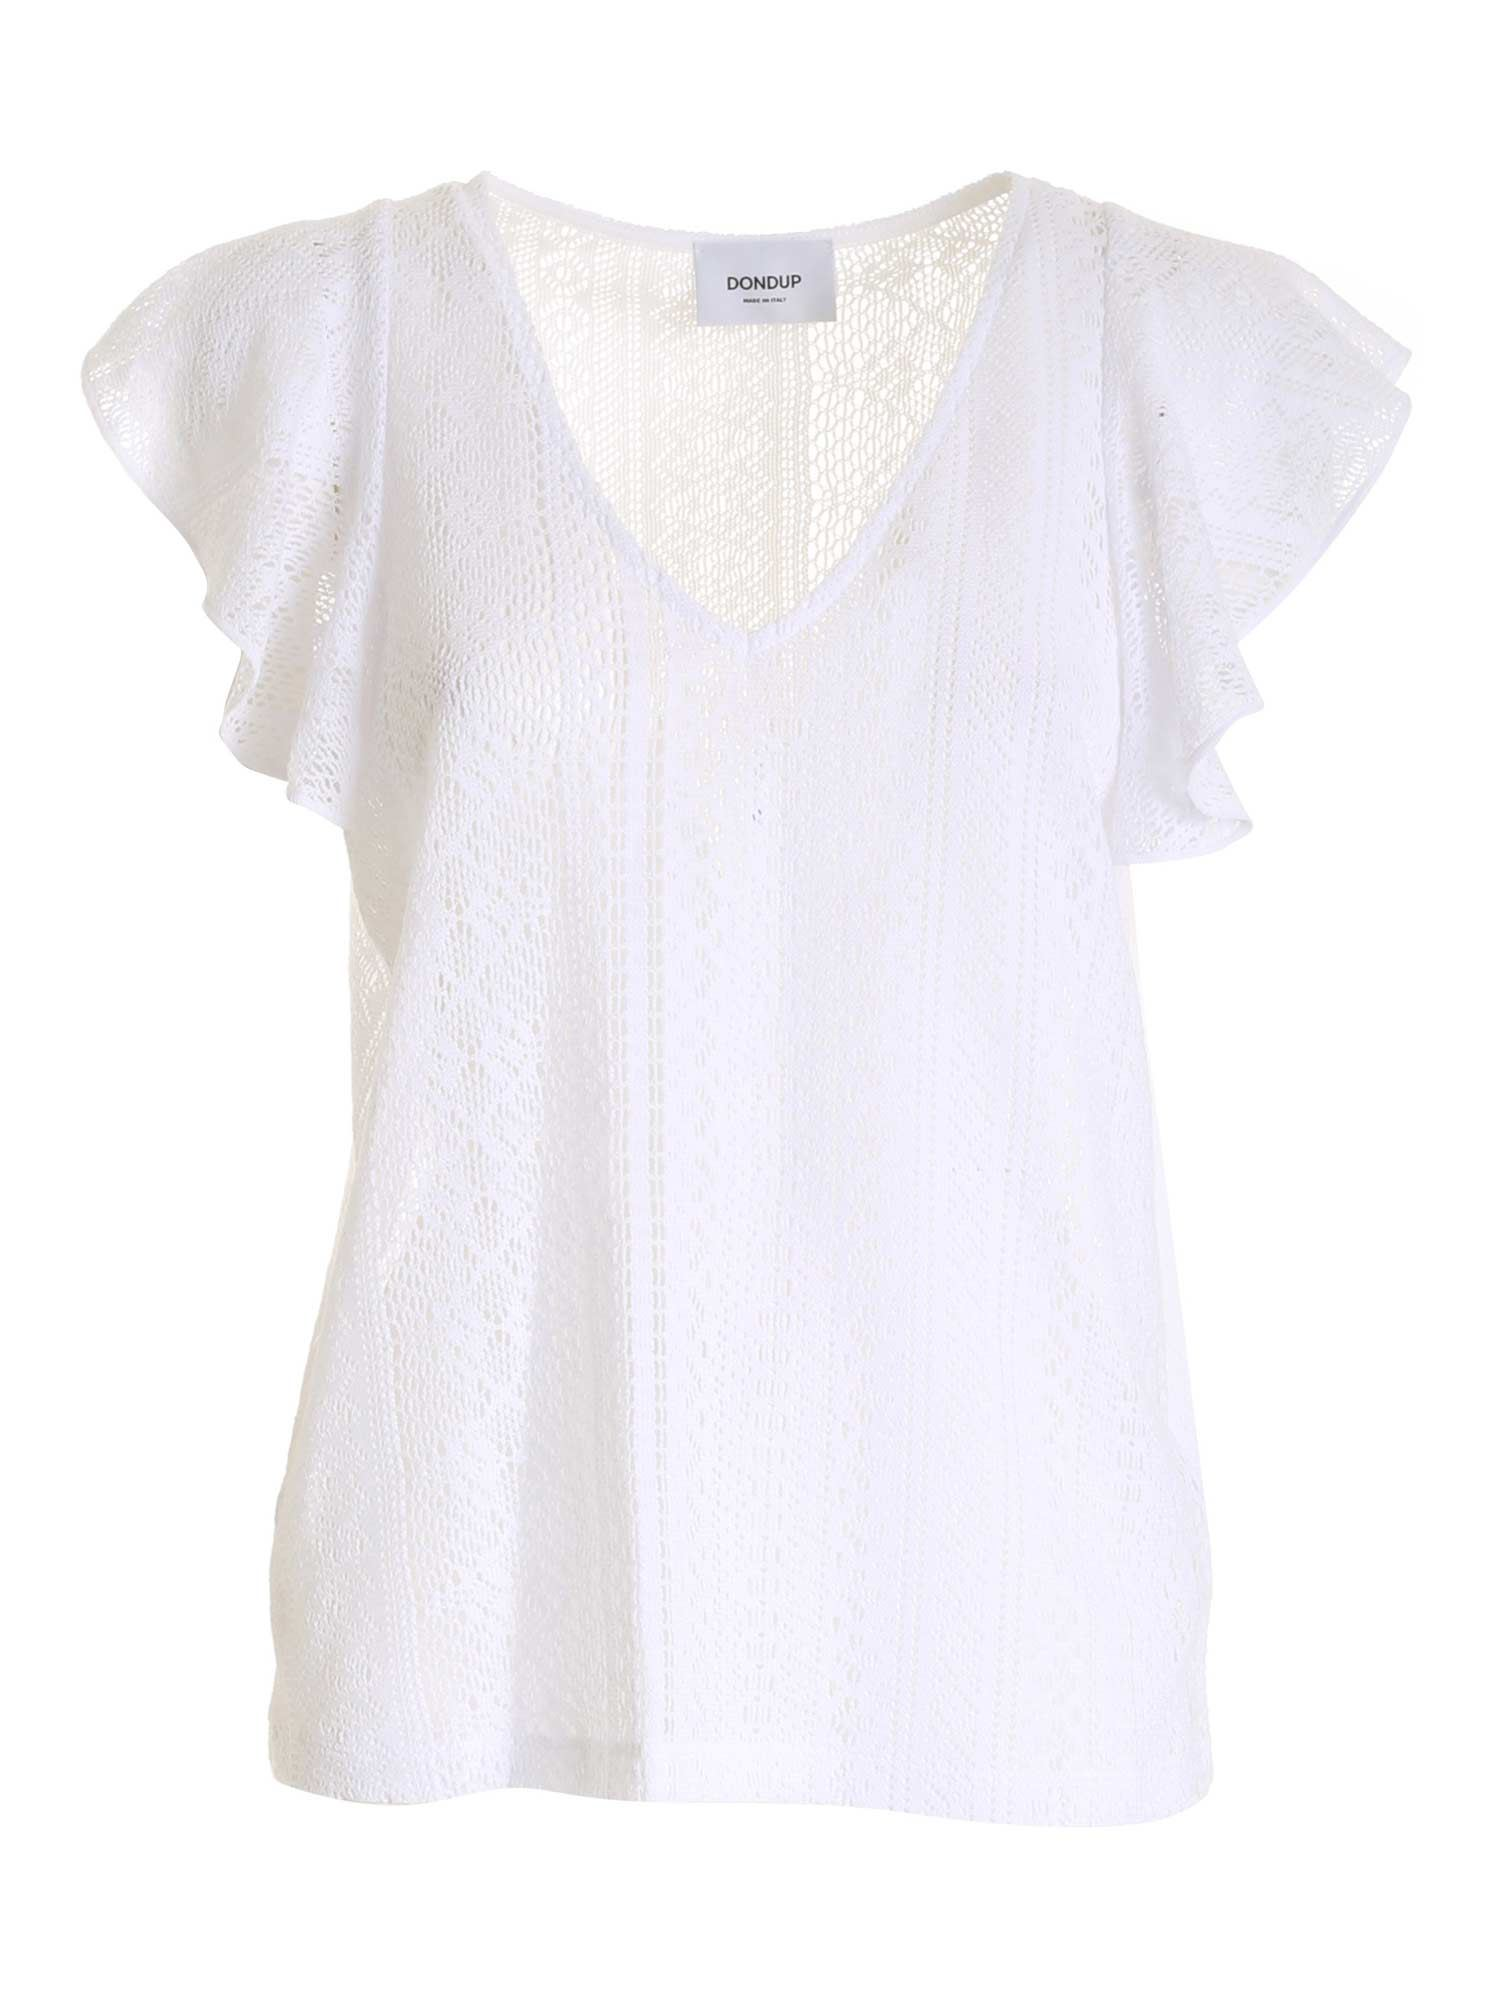 Dondup V-NECK TOP IN WHITE